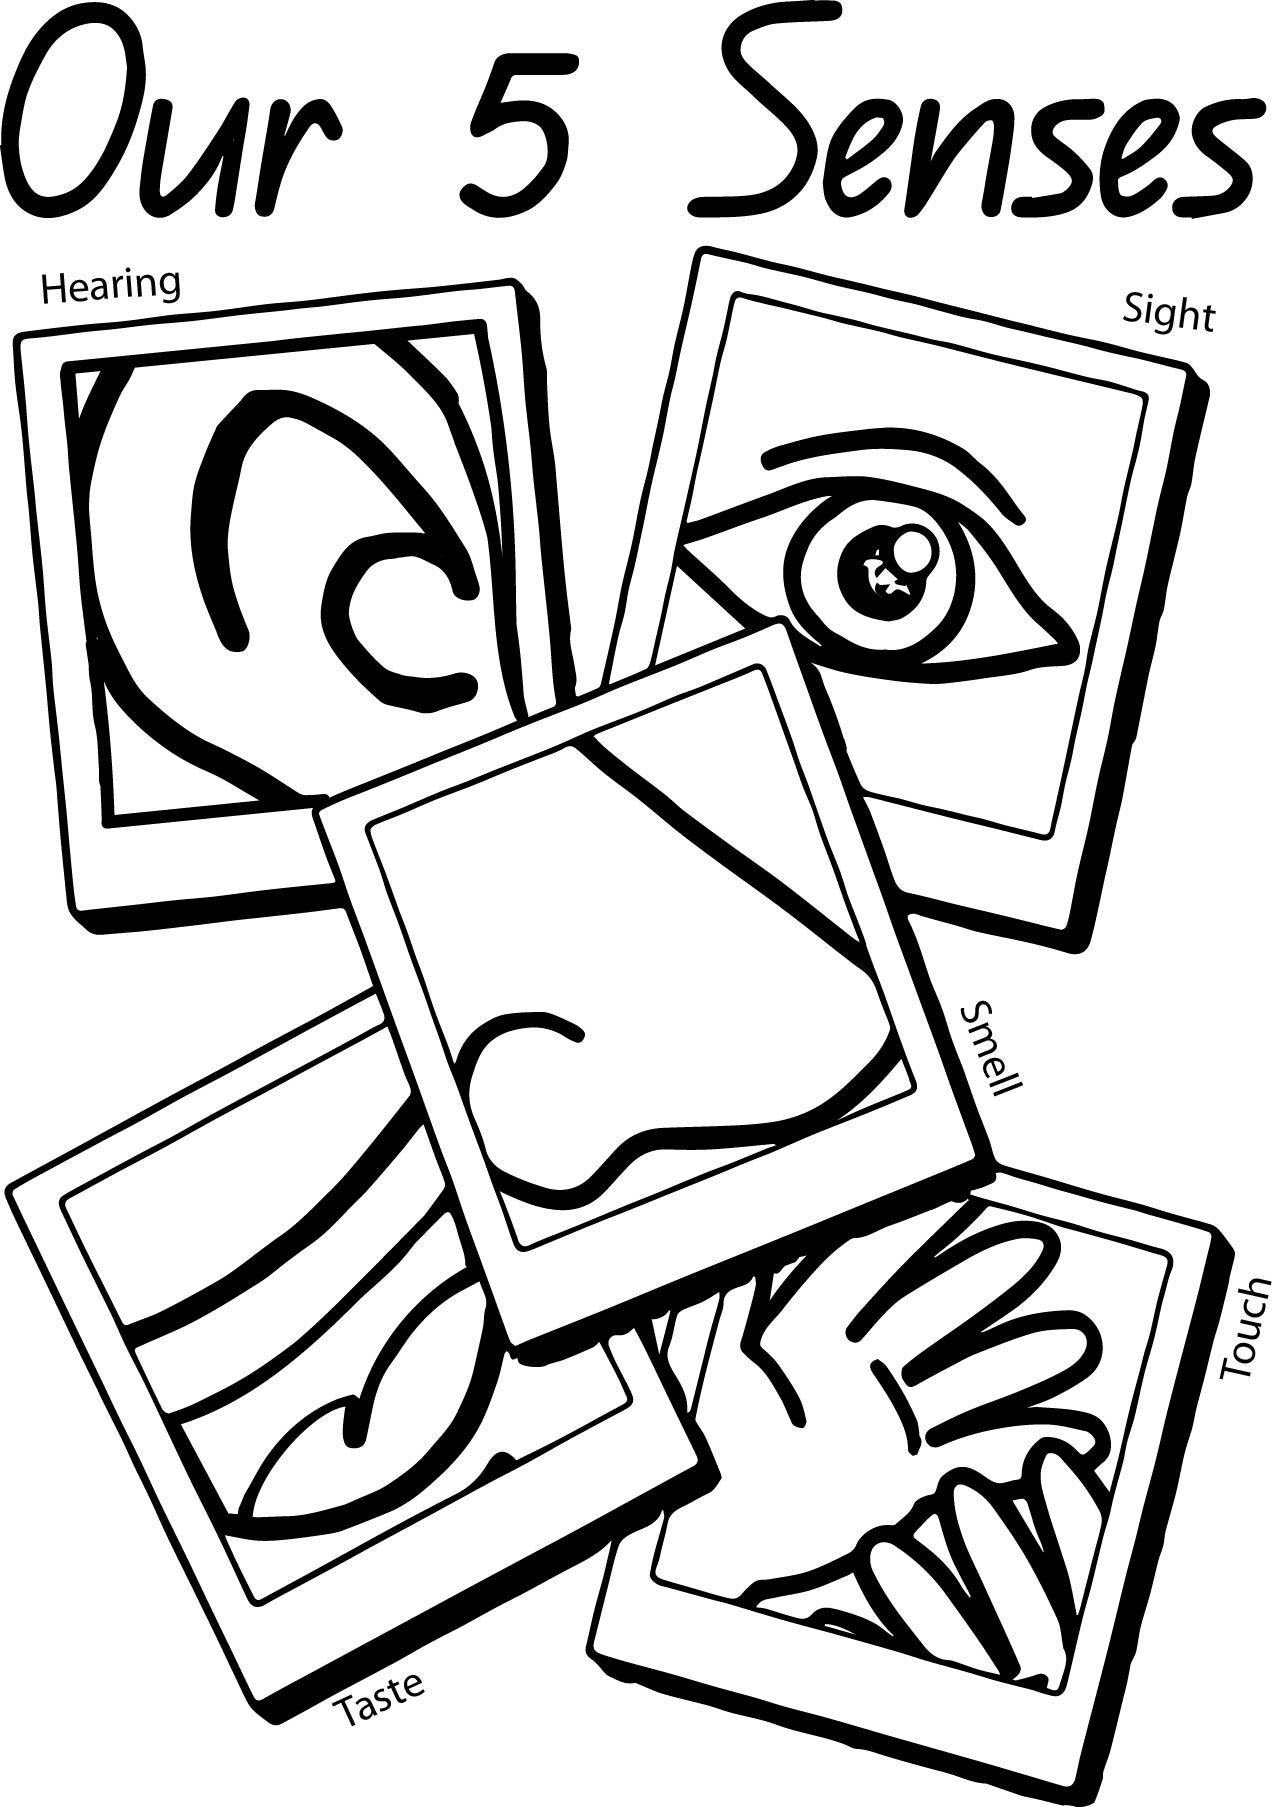 Our 5 Senses Page Coloring Page